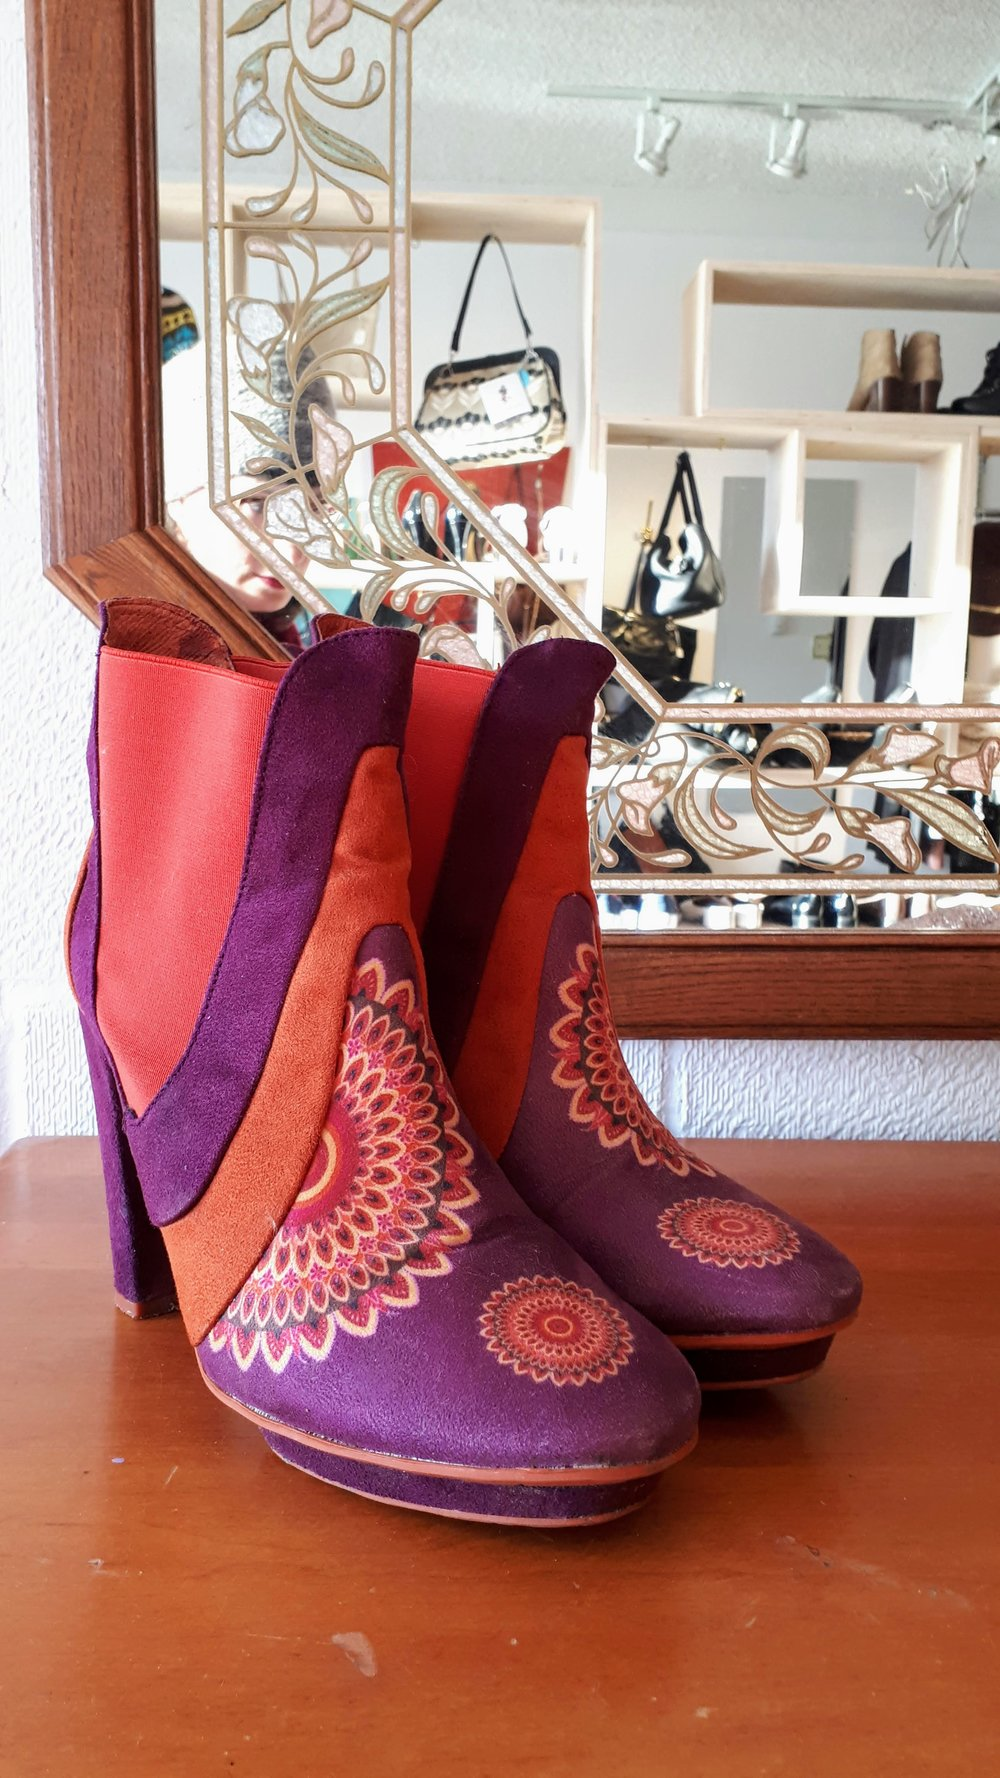 Desigual boots; Size 8.5, $72